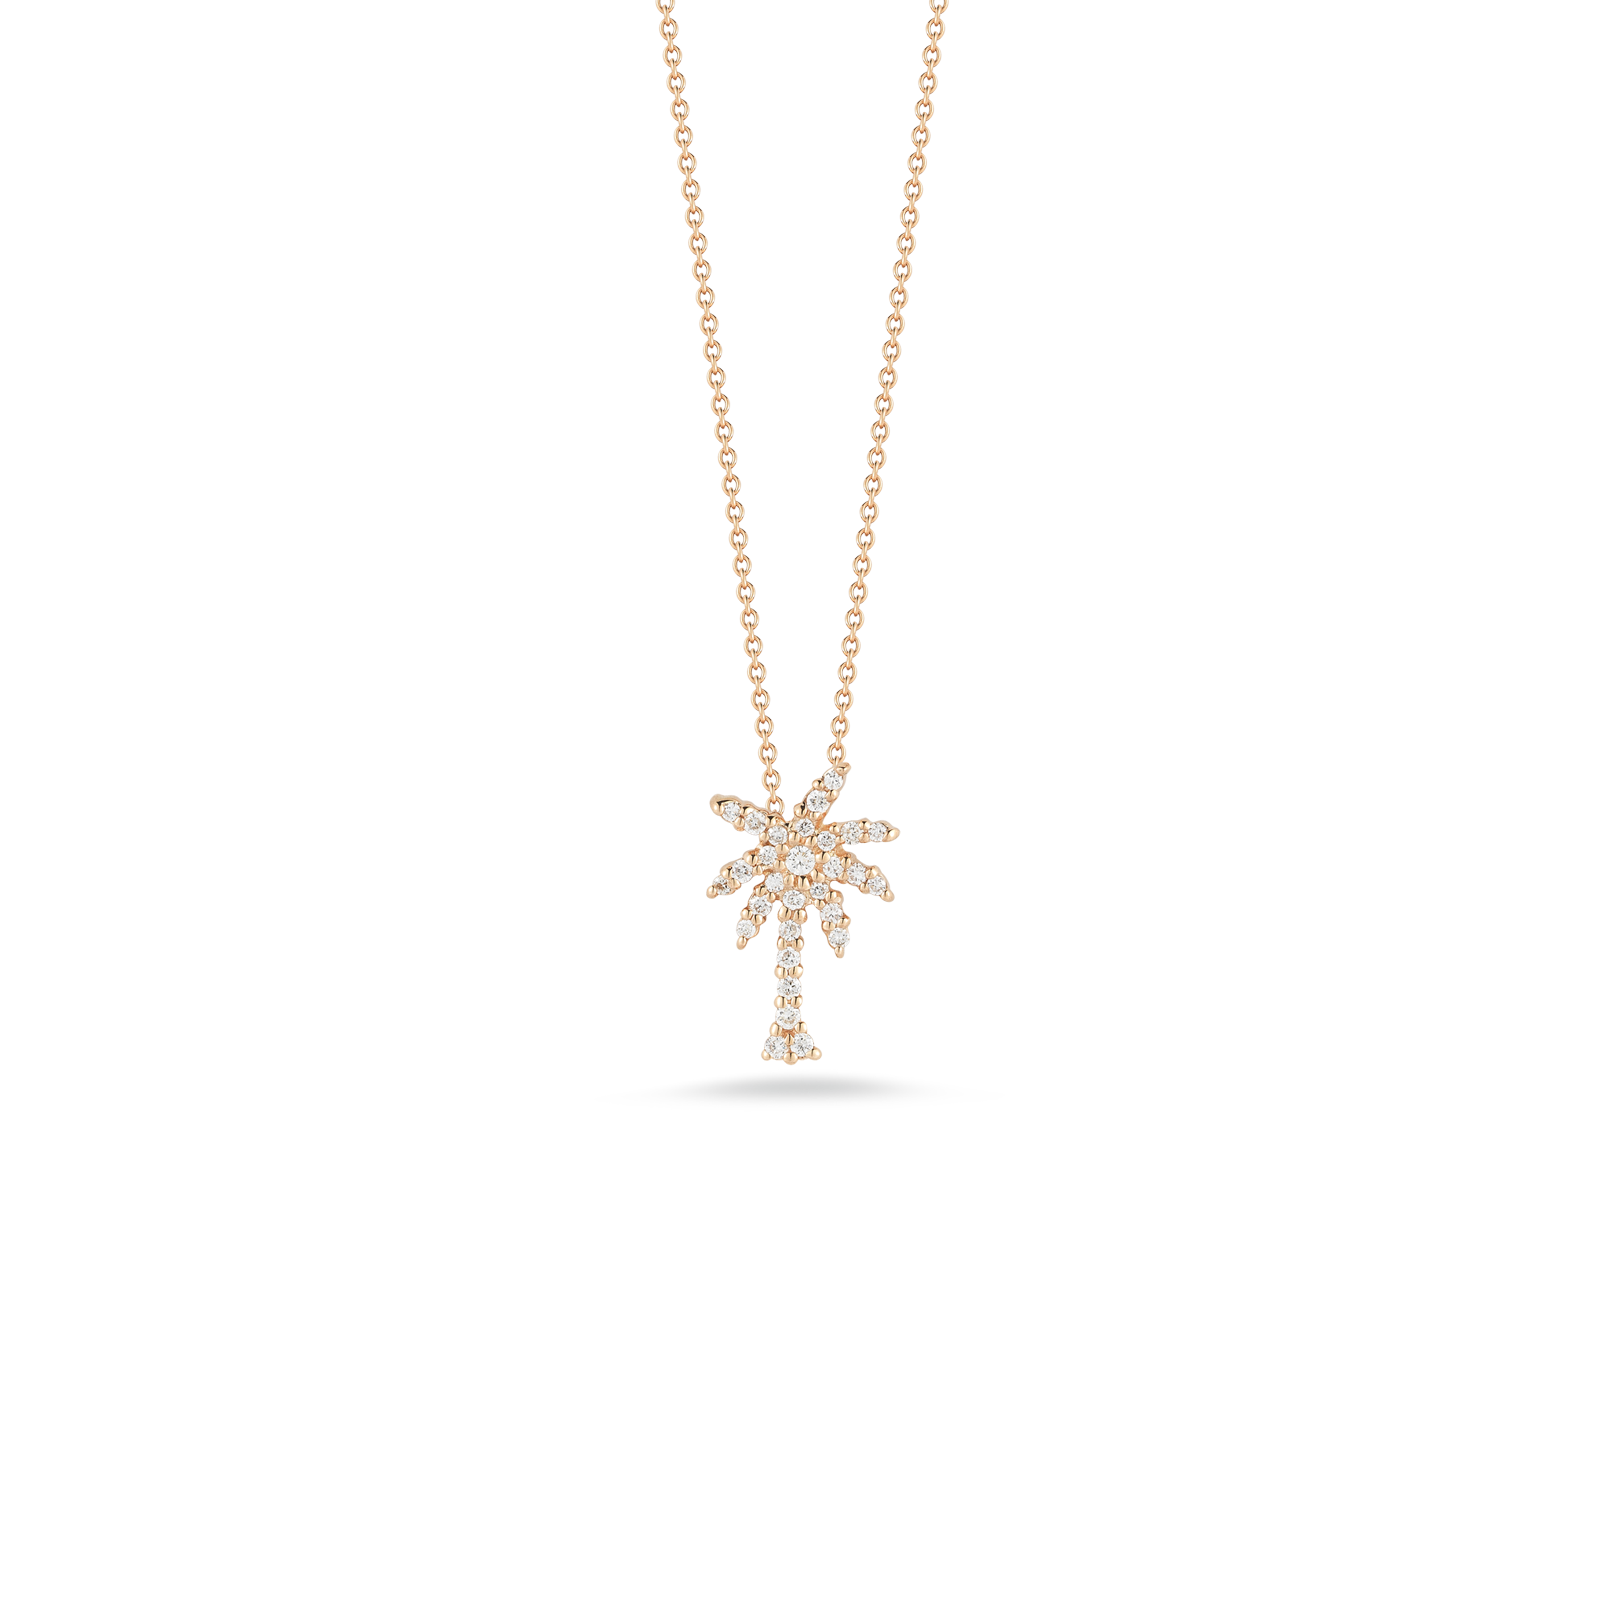 white pendant coin diamond pendantnecklace palm tree gold necklace roberto